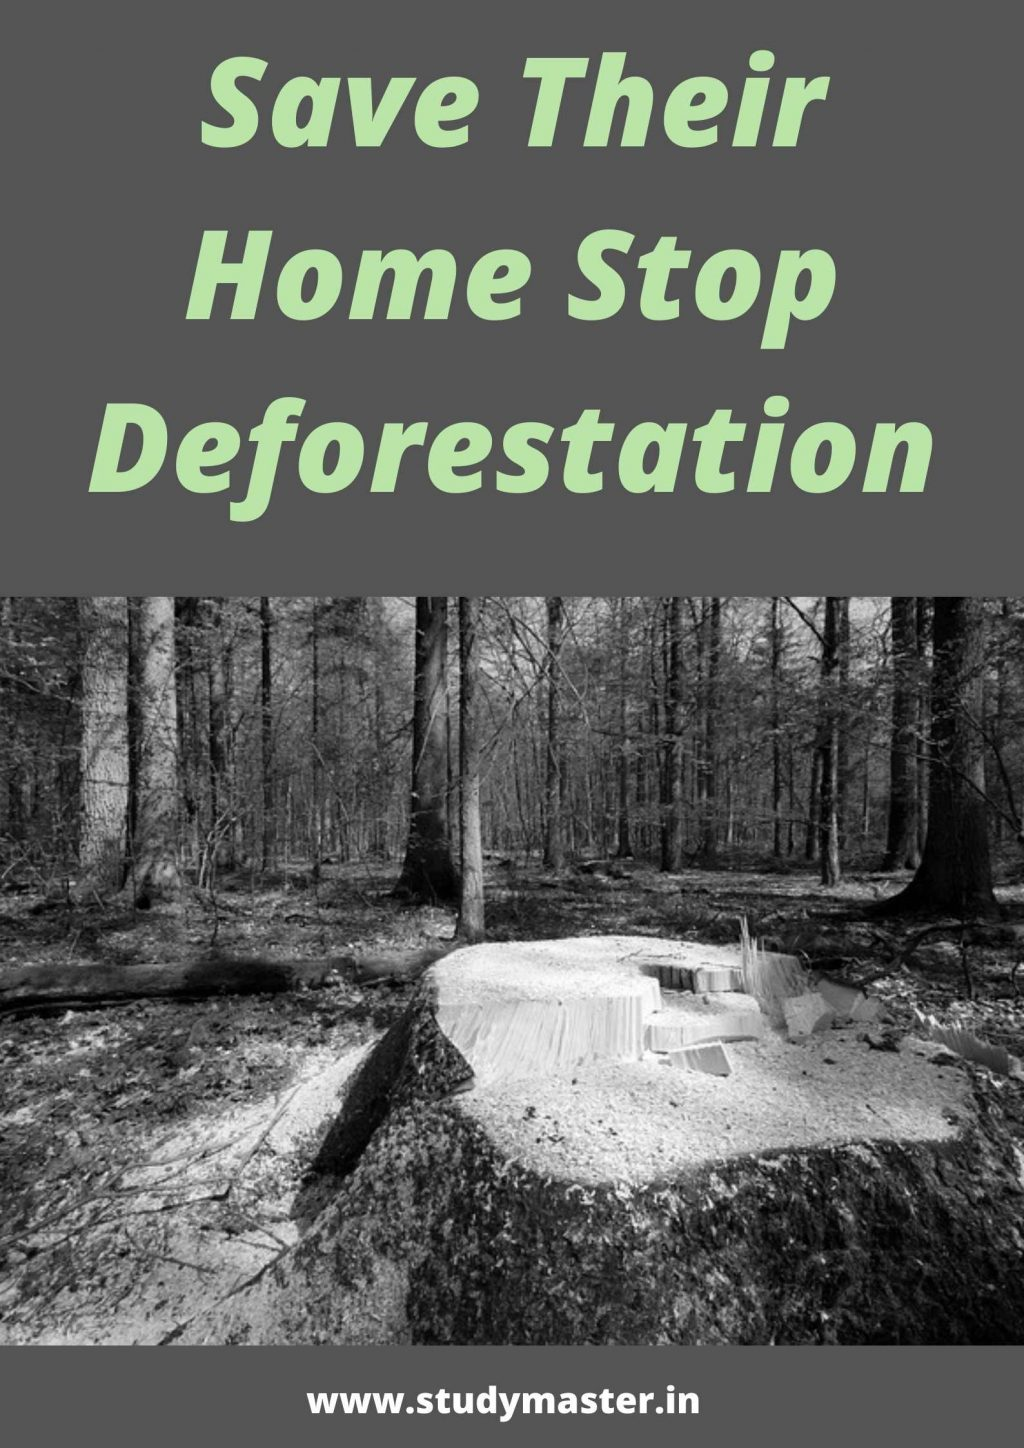 poster on deforestation and greenhouse effect